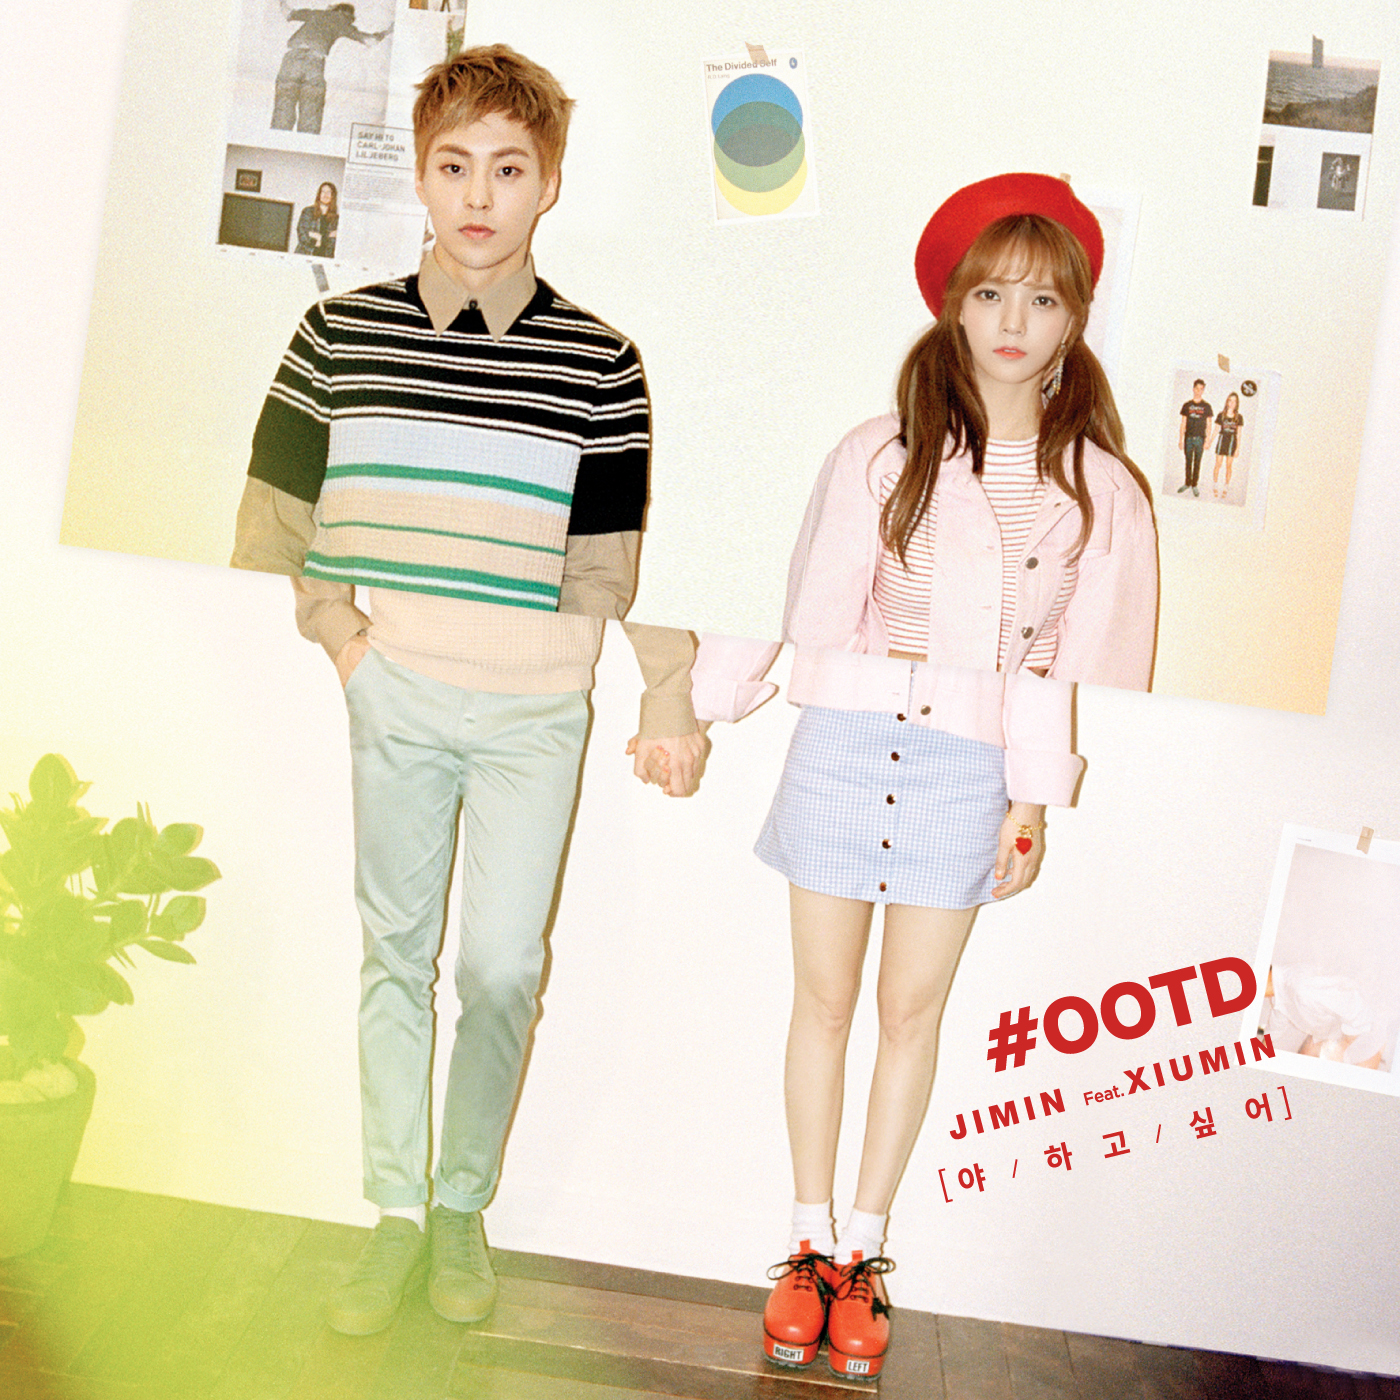 AOA's Jimin and EXO's Xiumin show off their chemistry in 'Call You Bae' teaser image